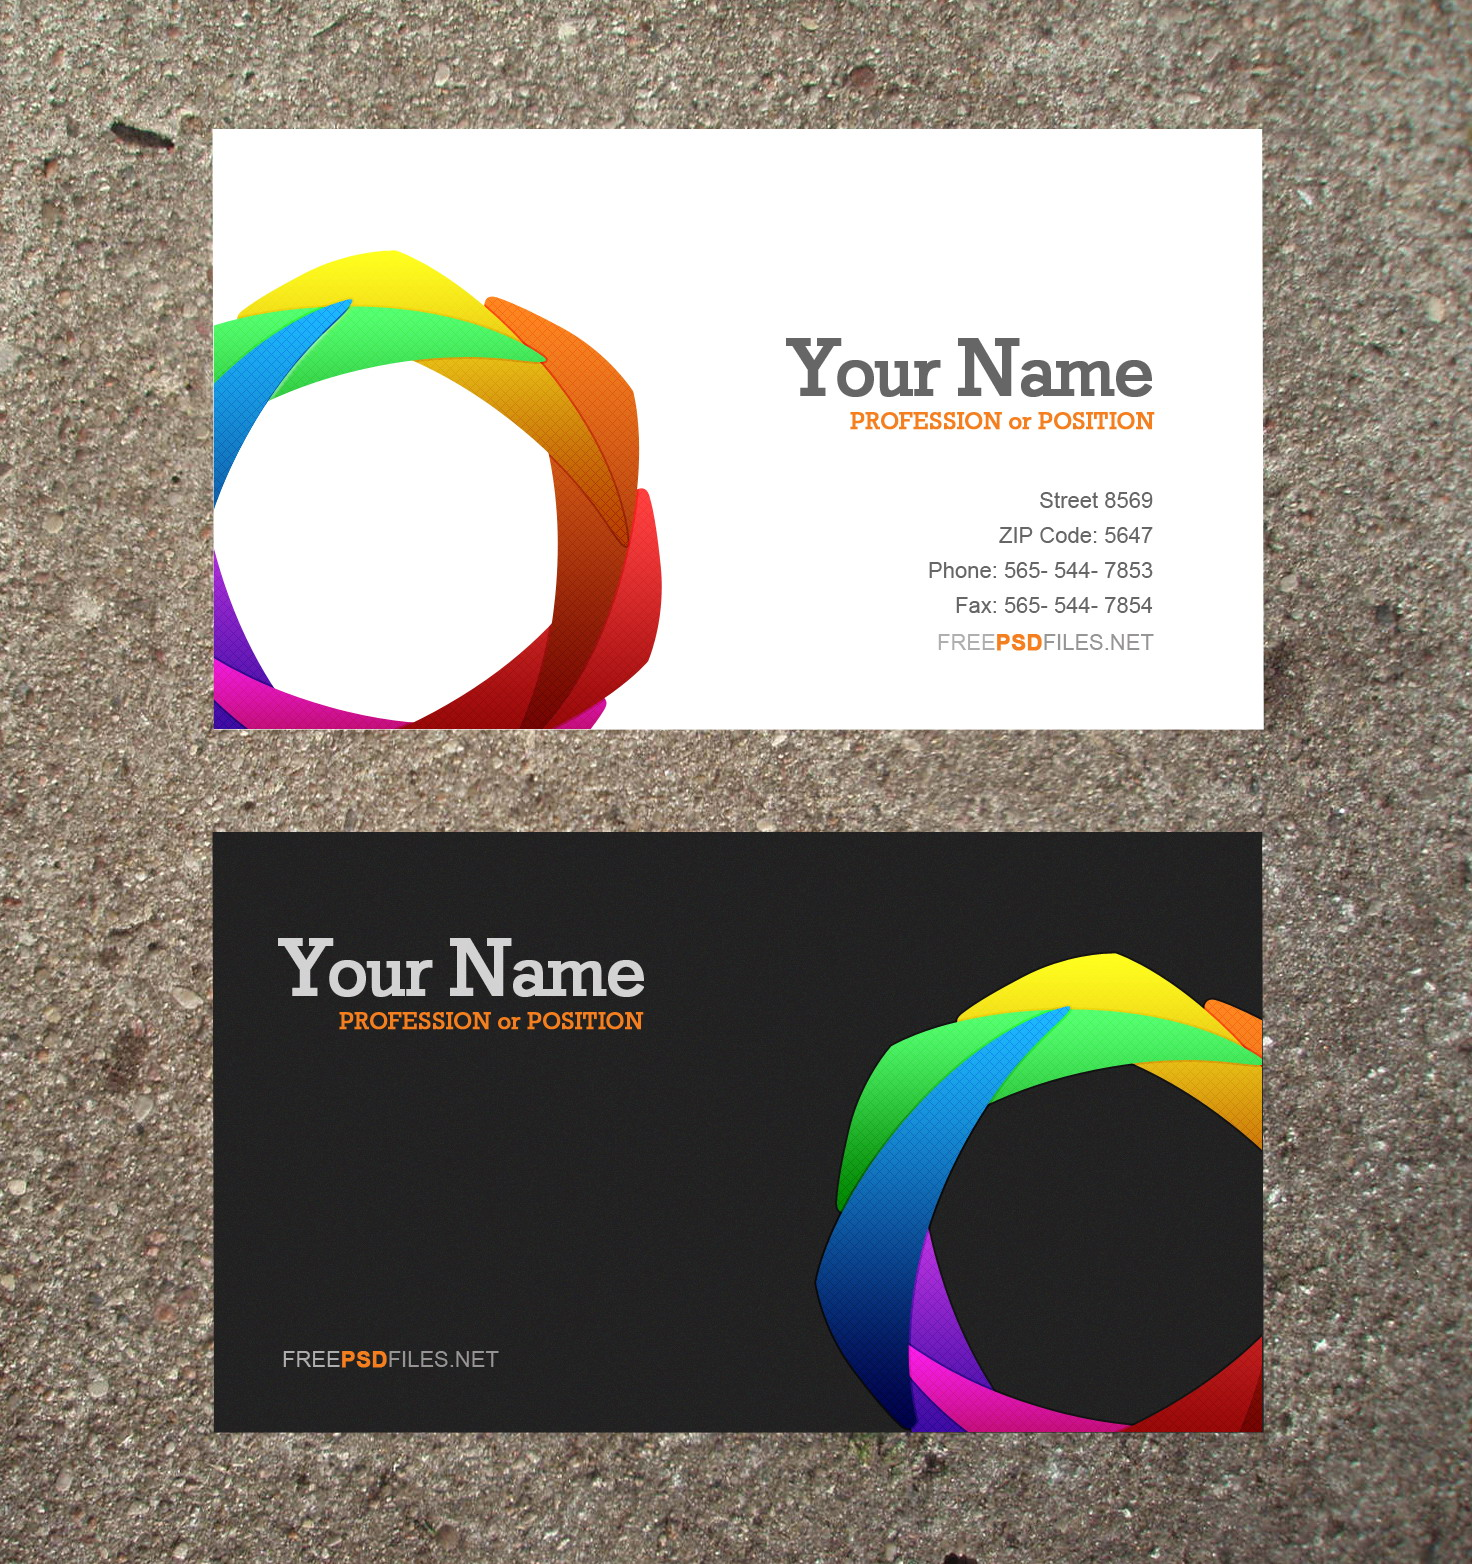 Template for business cards free download dawaydabrowa template for business cards free download fbccfo Choice Image